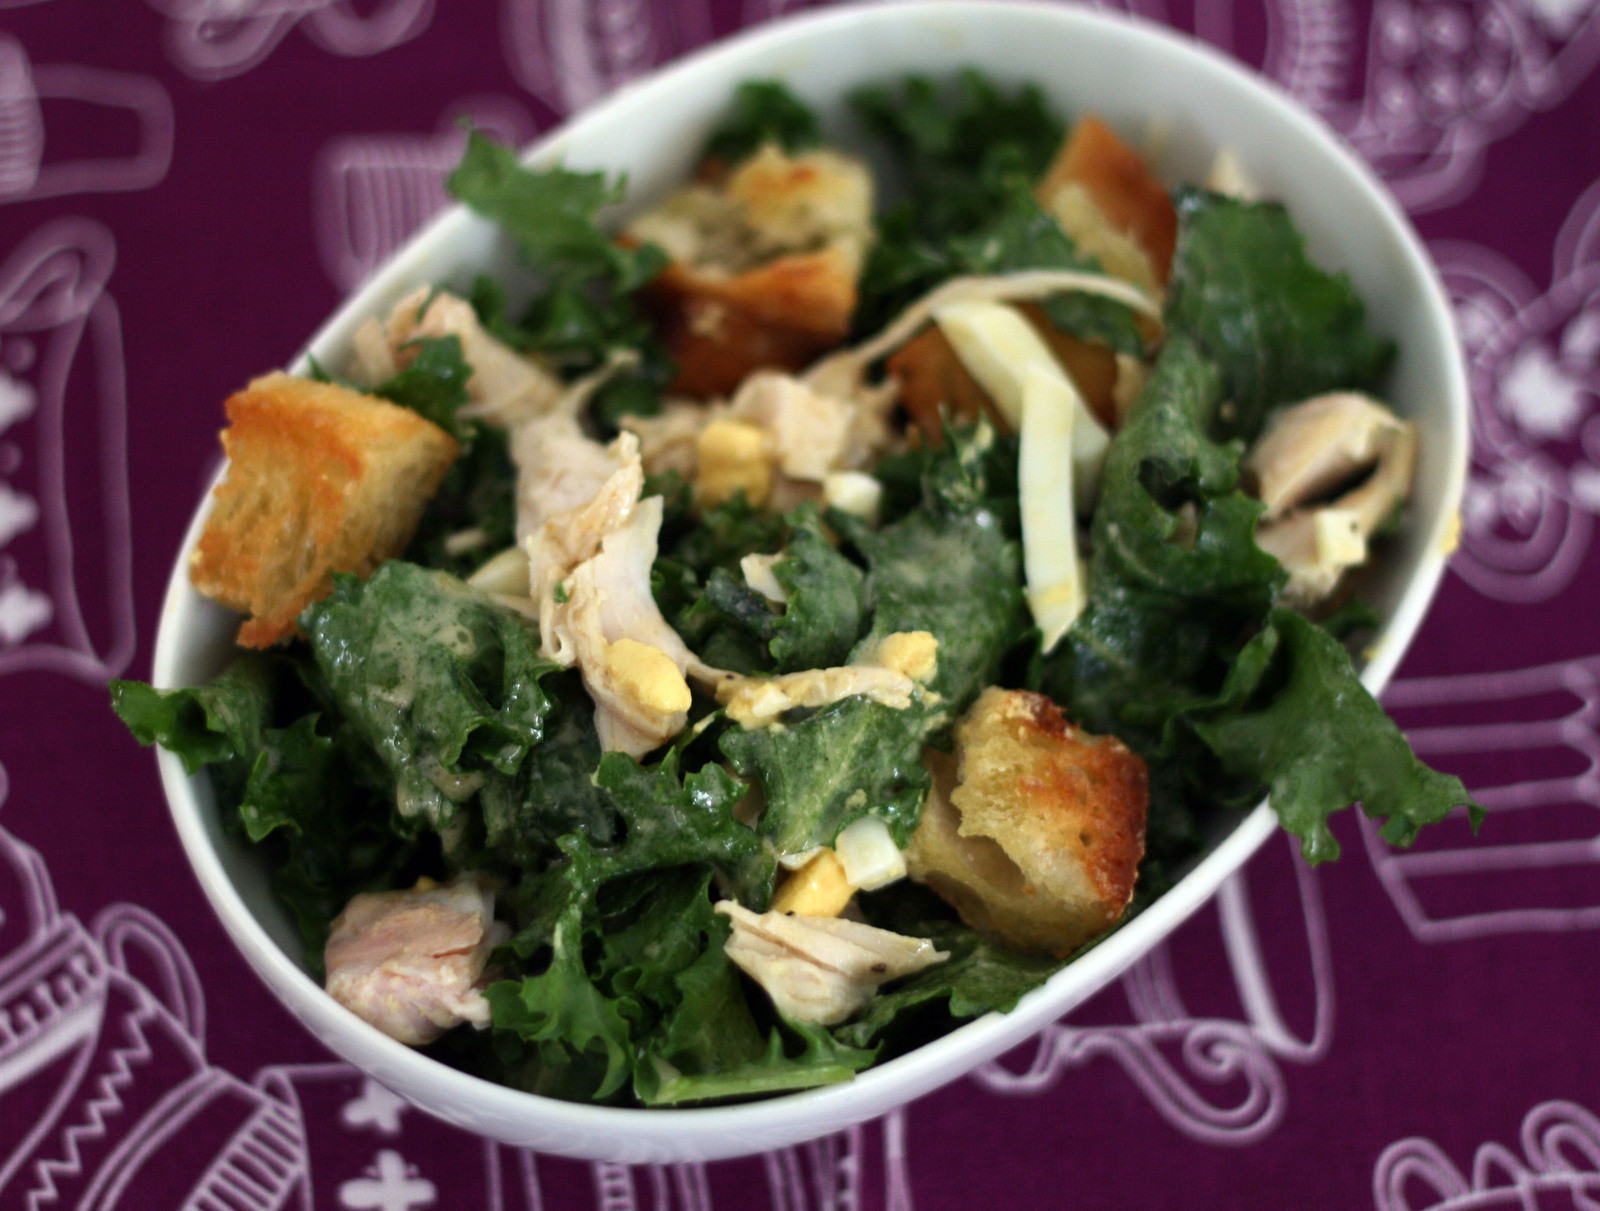 Escarole Salad With Turkey Amp Garlic Rubbed Croutons How